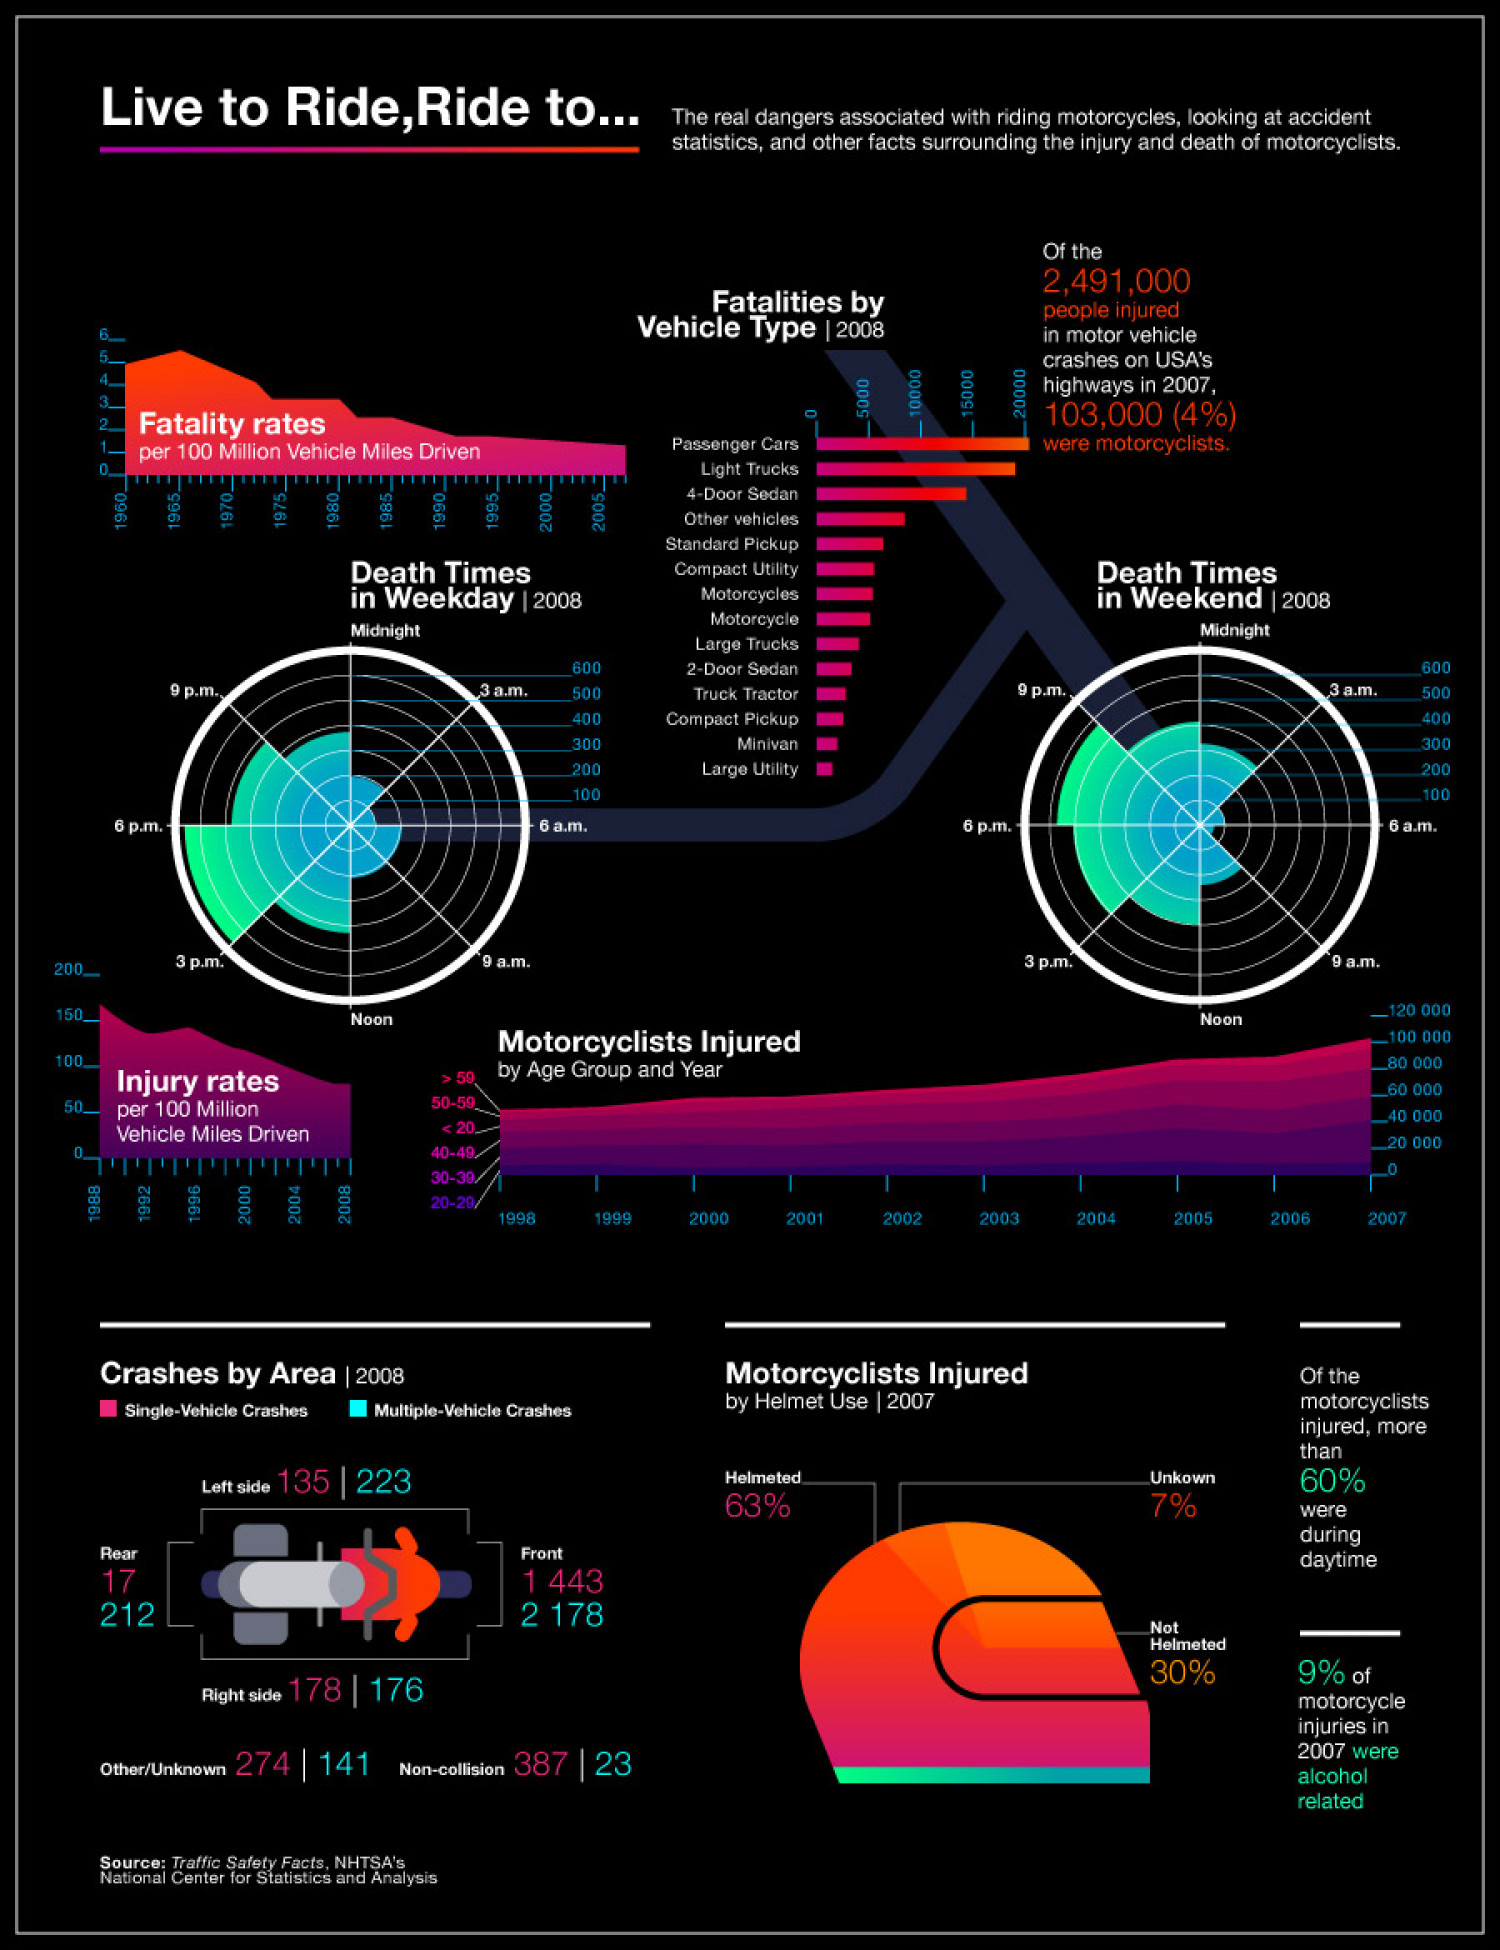 Live to Ride, Ride to.... Infographic